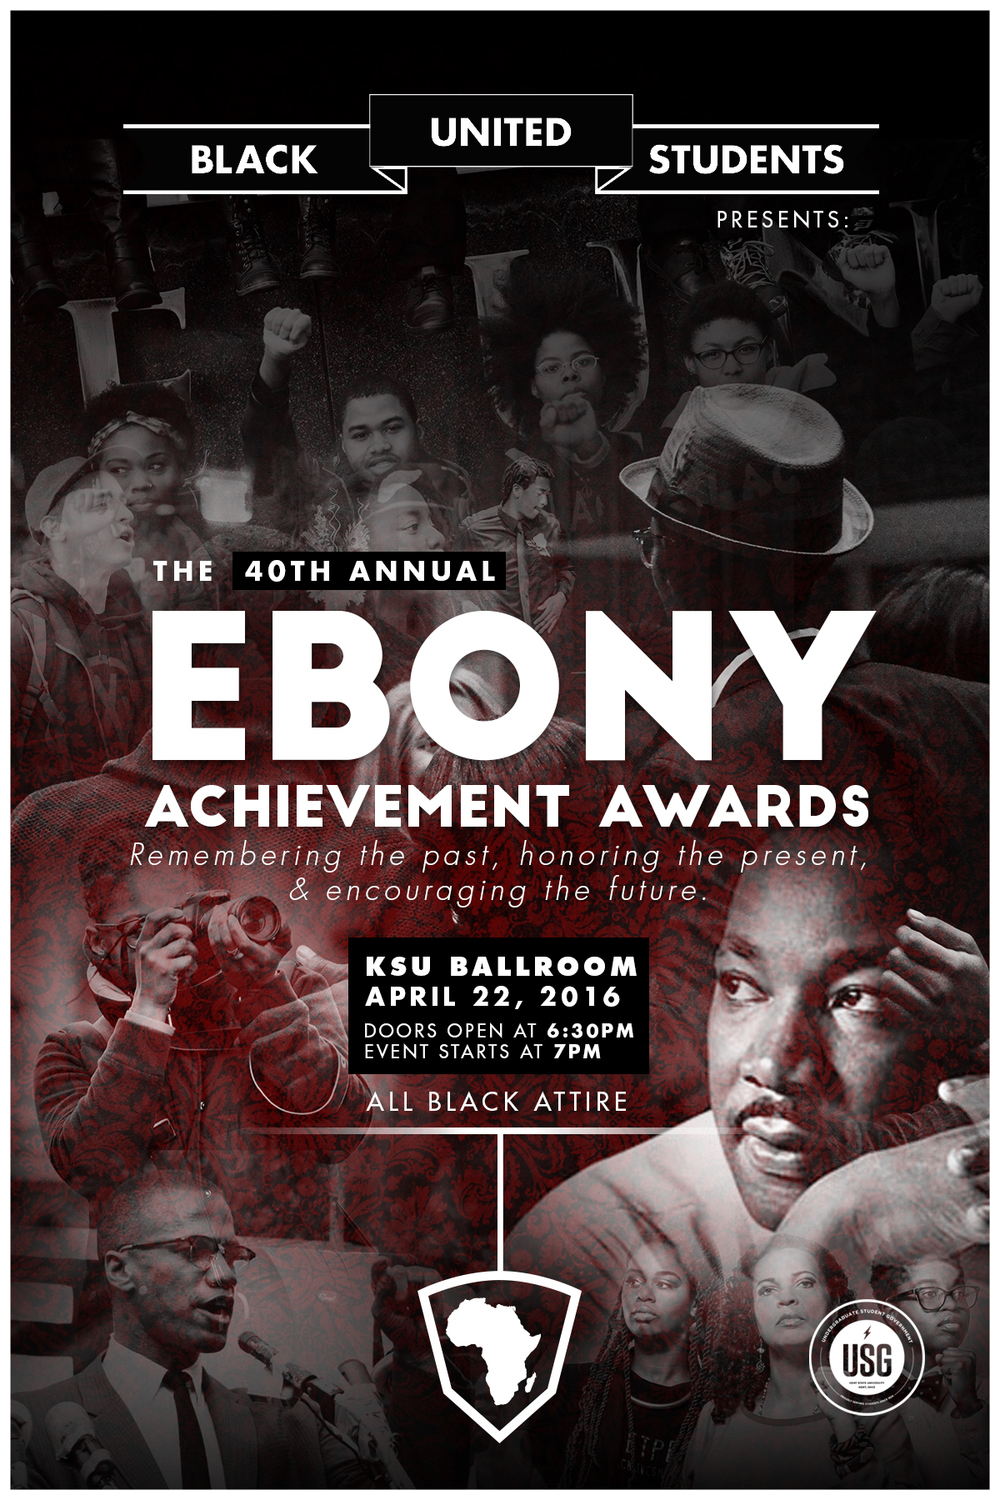 EbonyAchievementAwards.jpg